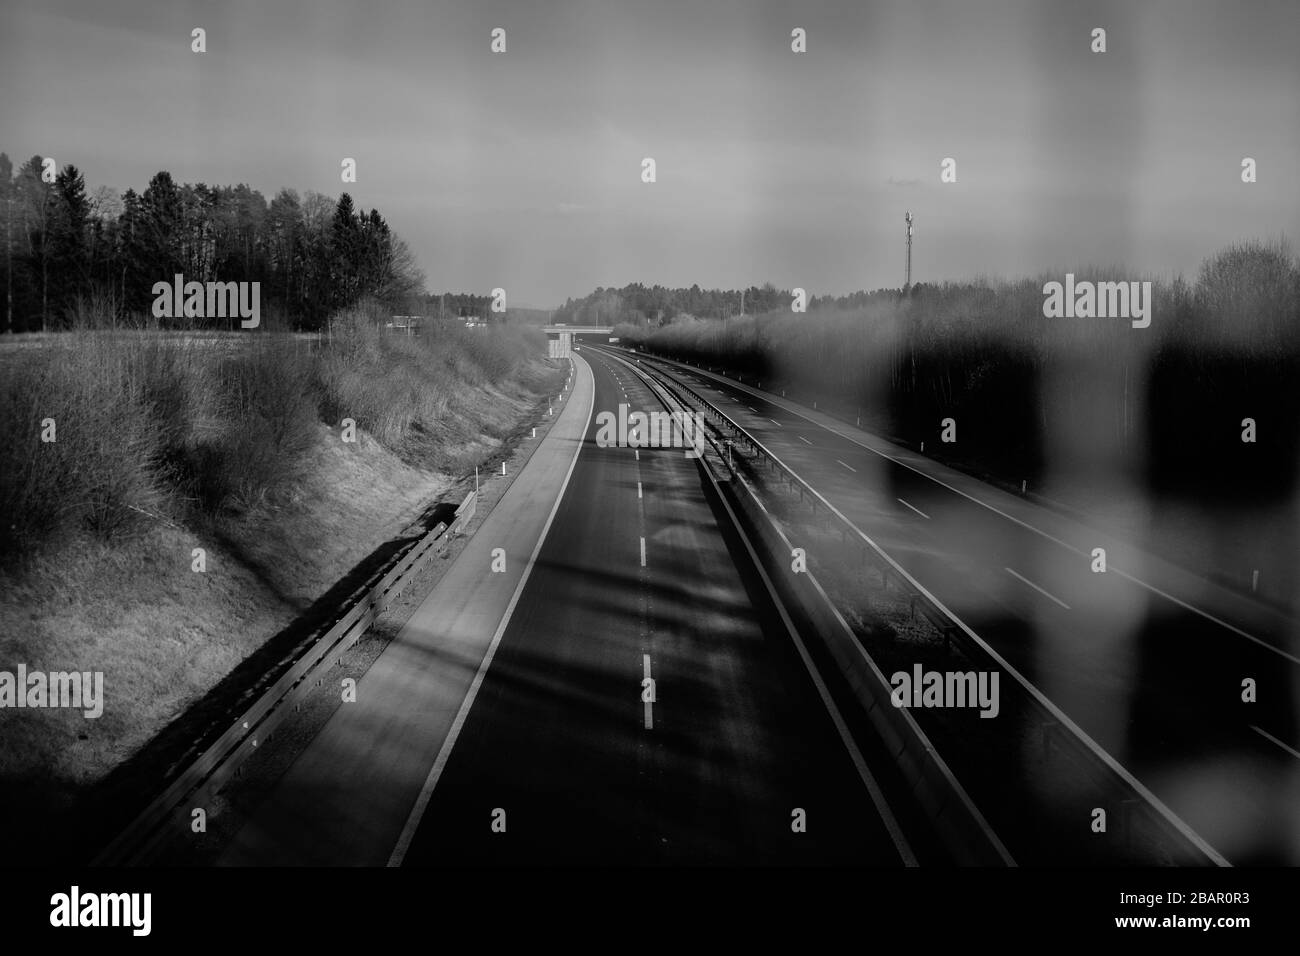 Kranj, Slovenia, March 20, 2020: An empty highway during the coronavirus outbreak nationwide lockdown is seen from a fenced overpass. Stock Photo